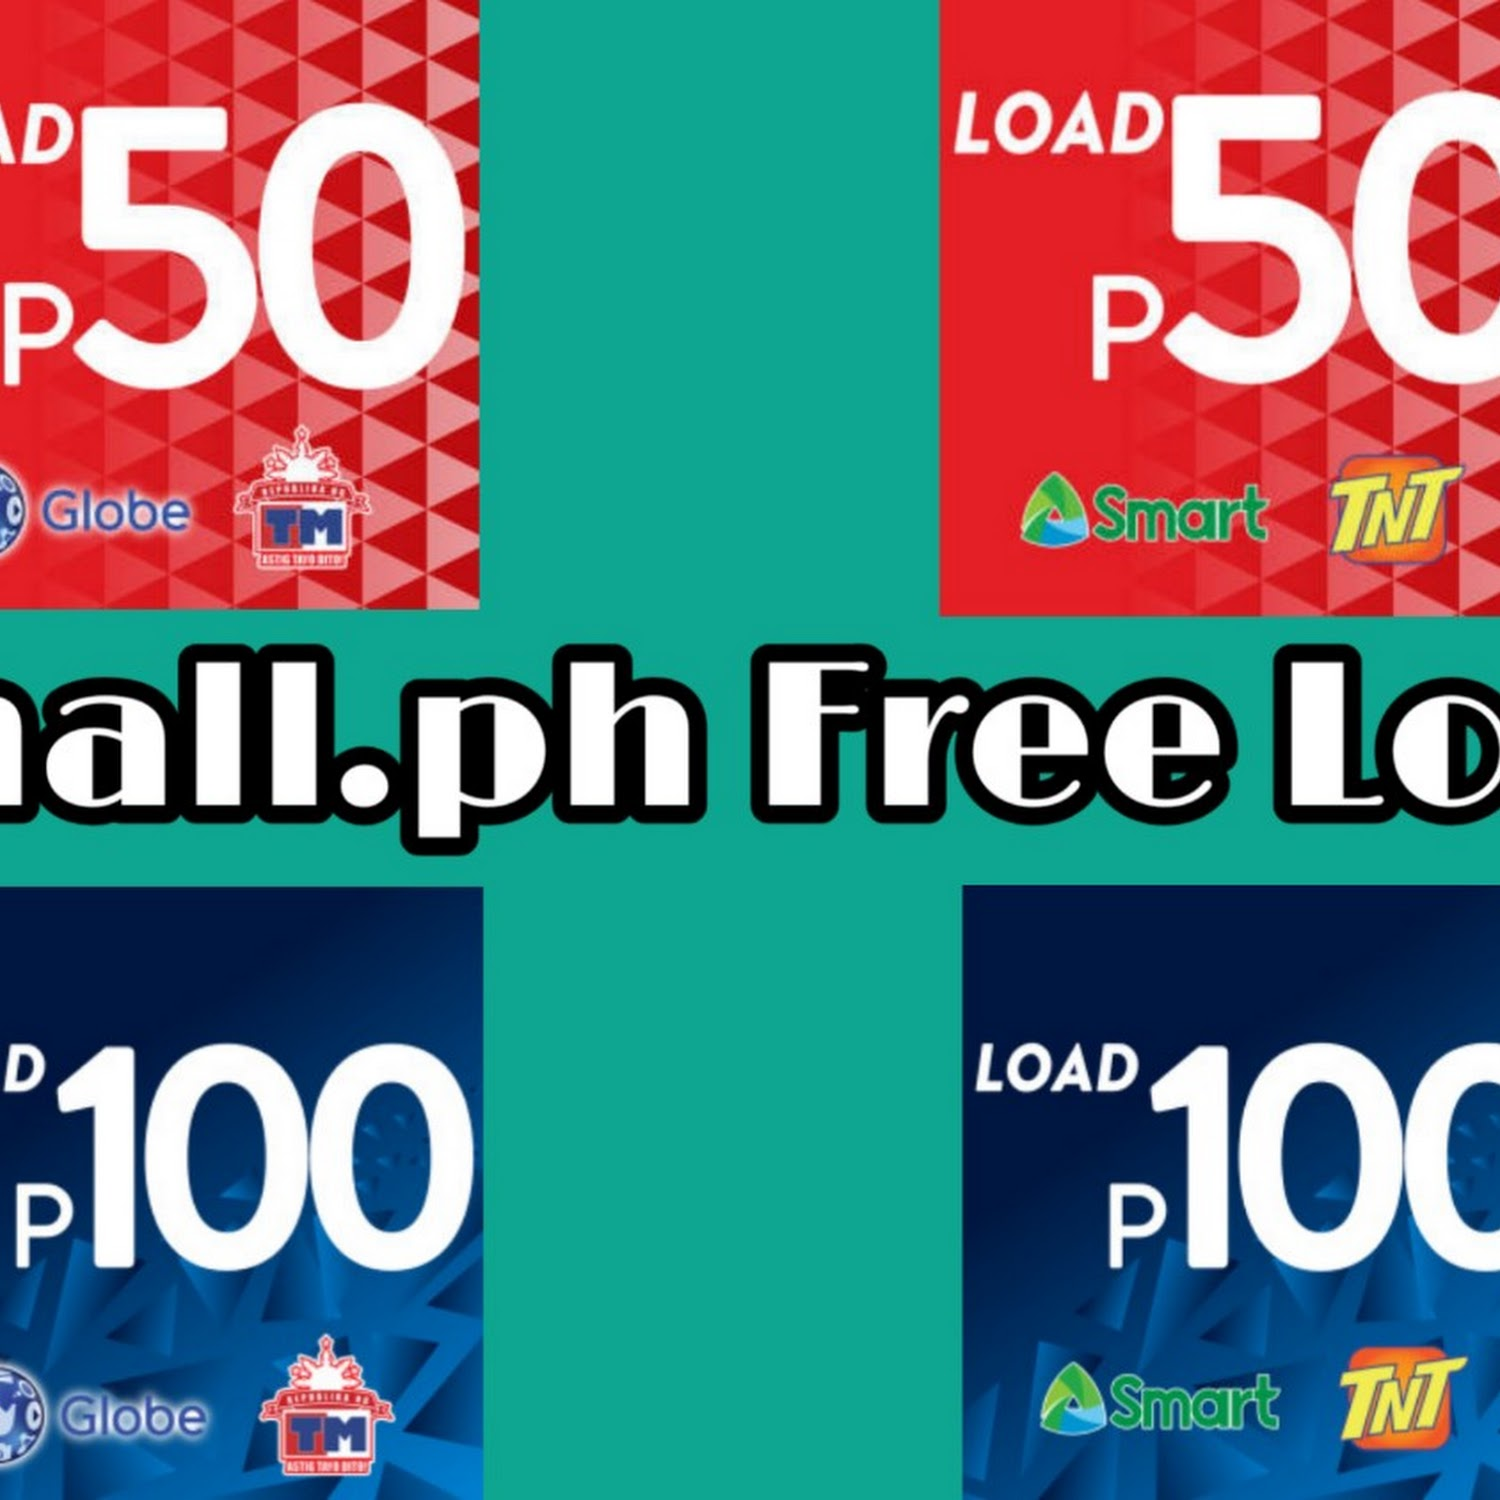 7mall.ph: Get Unlimited Free Load For Smart TNT Globe Hacks